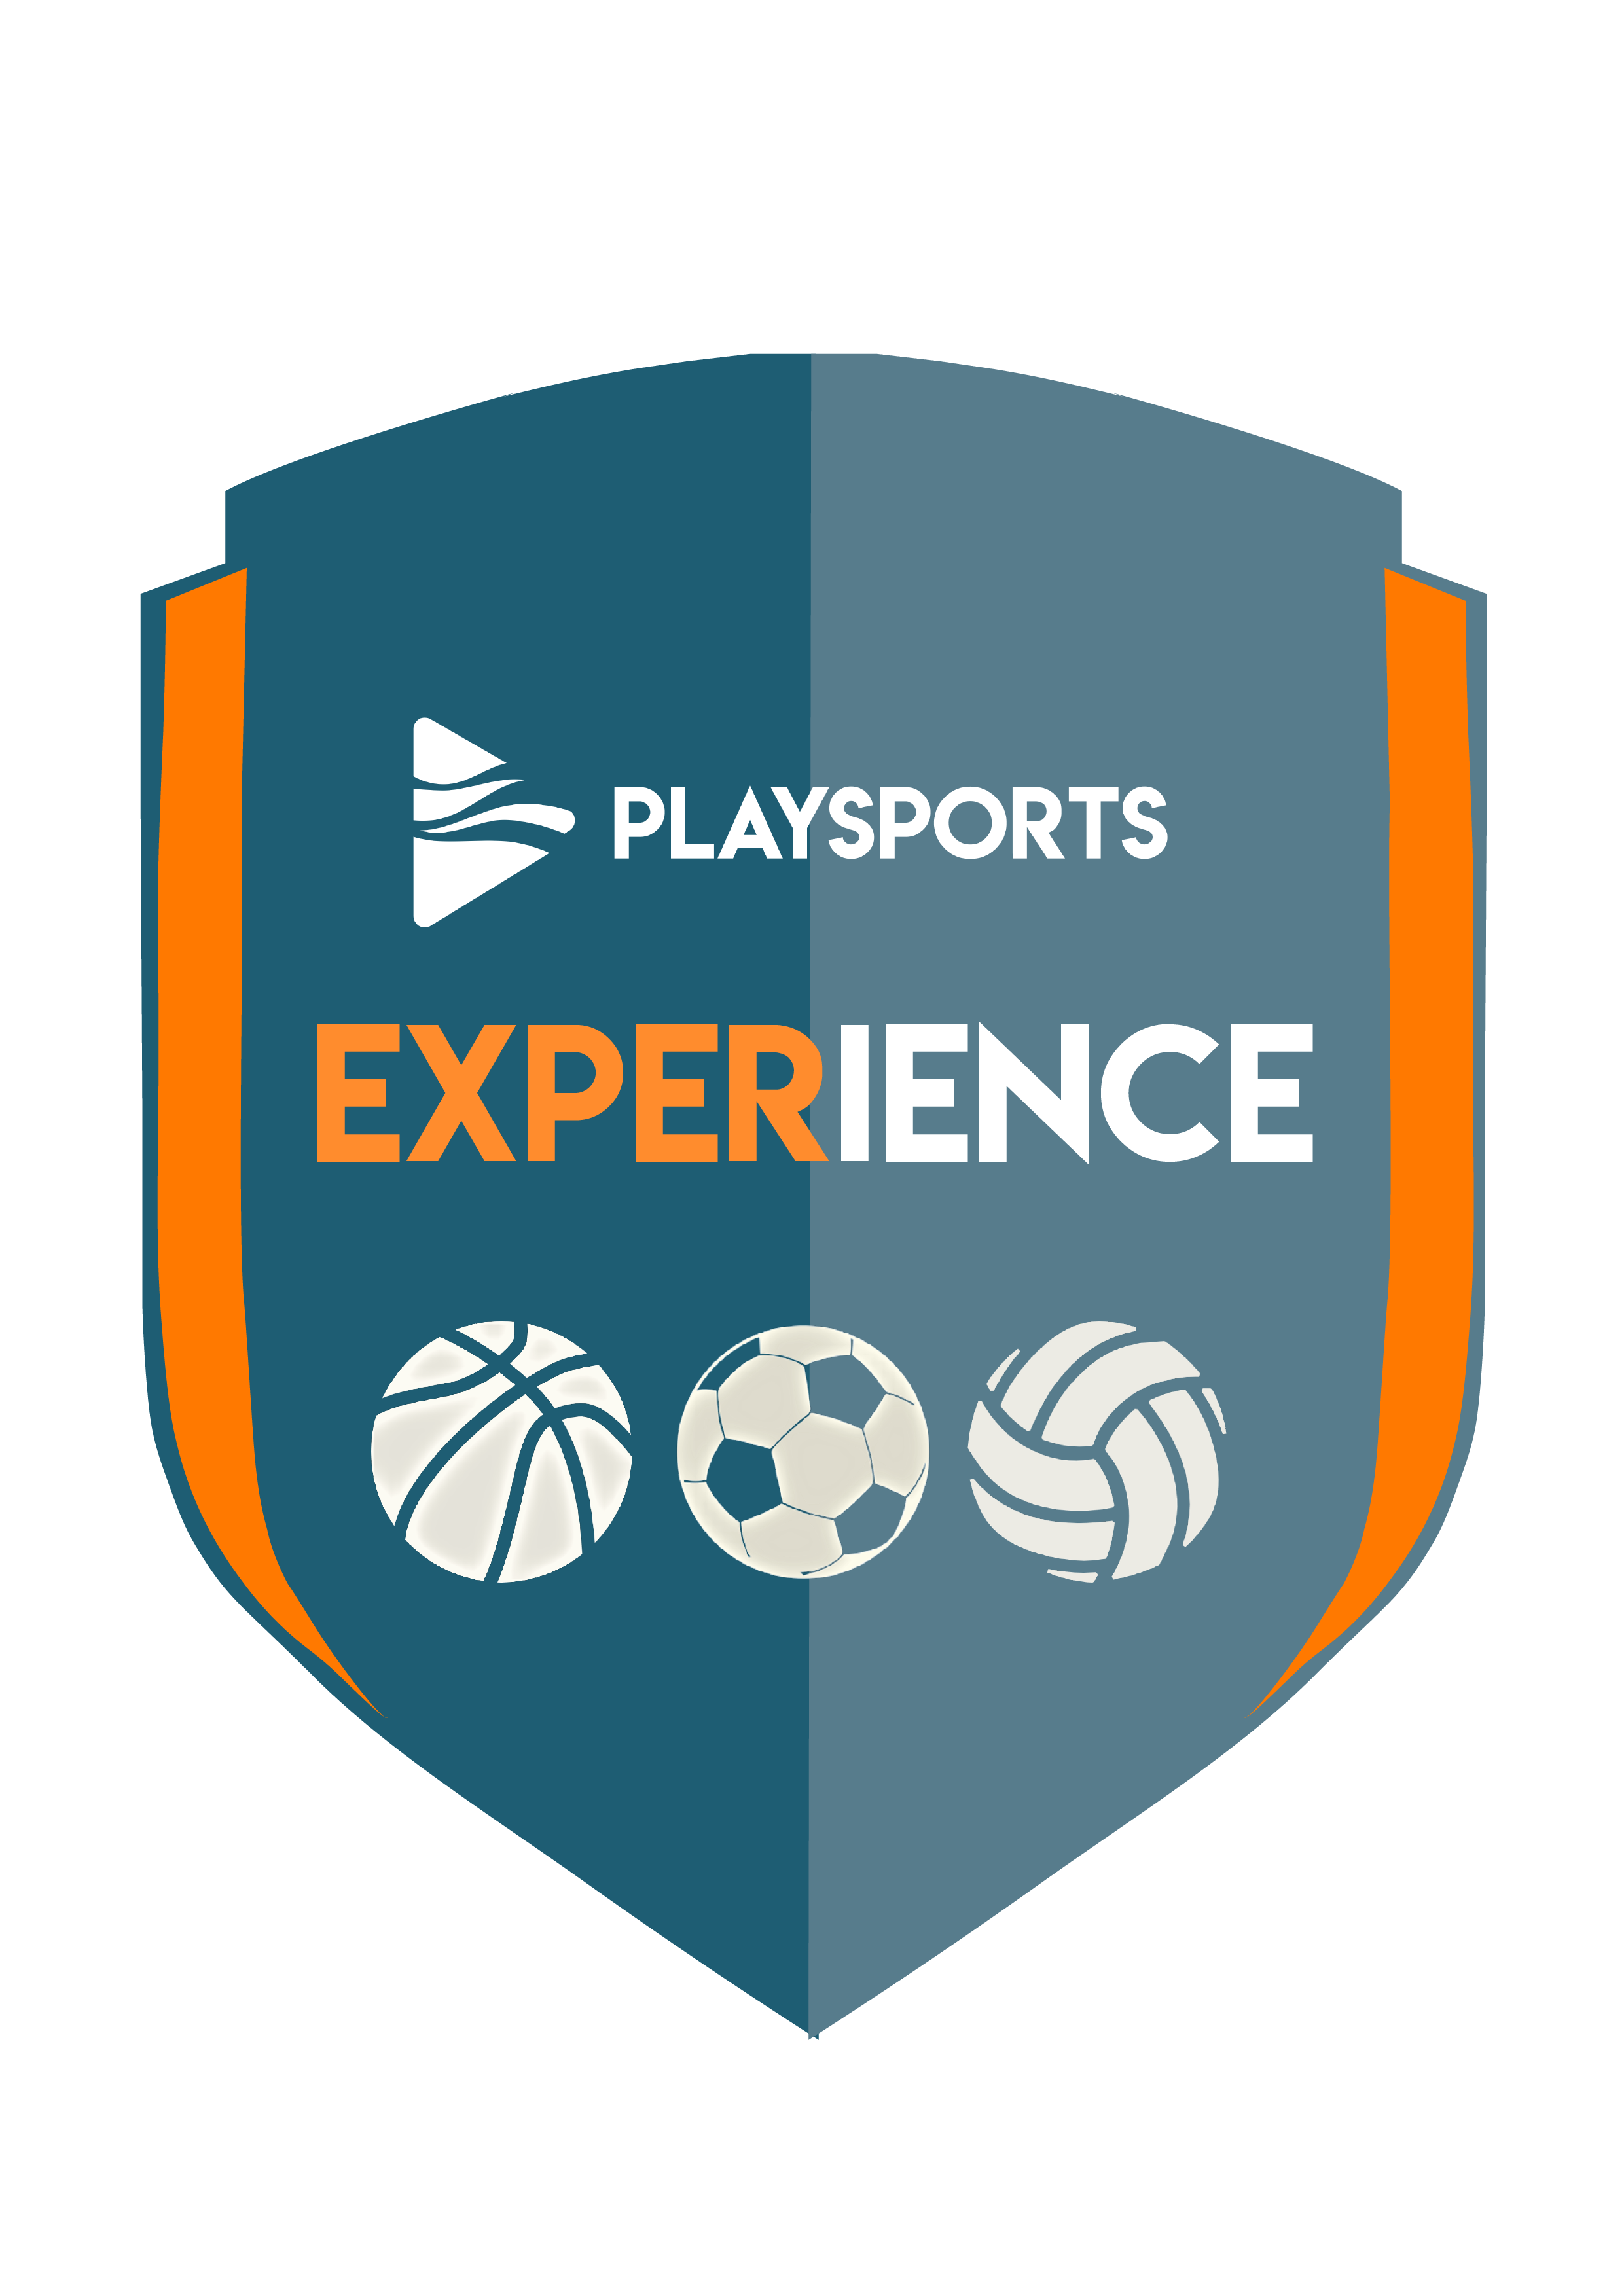 PlaySports Experience